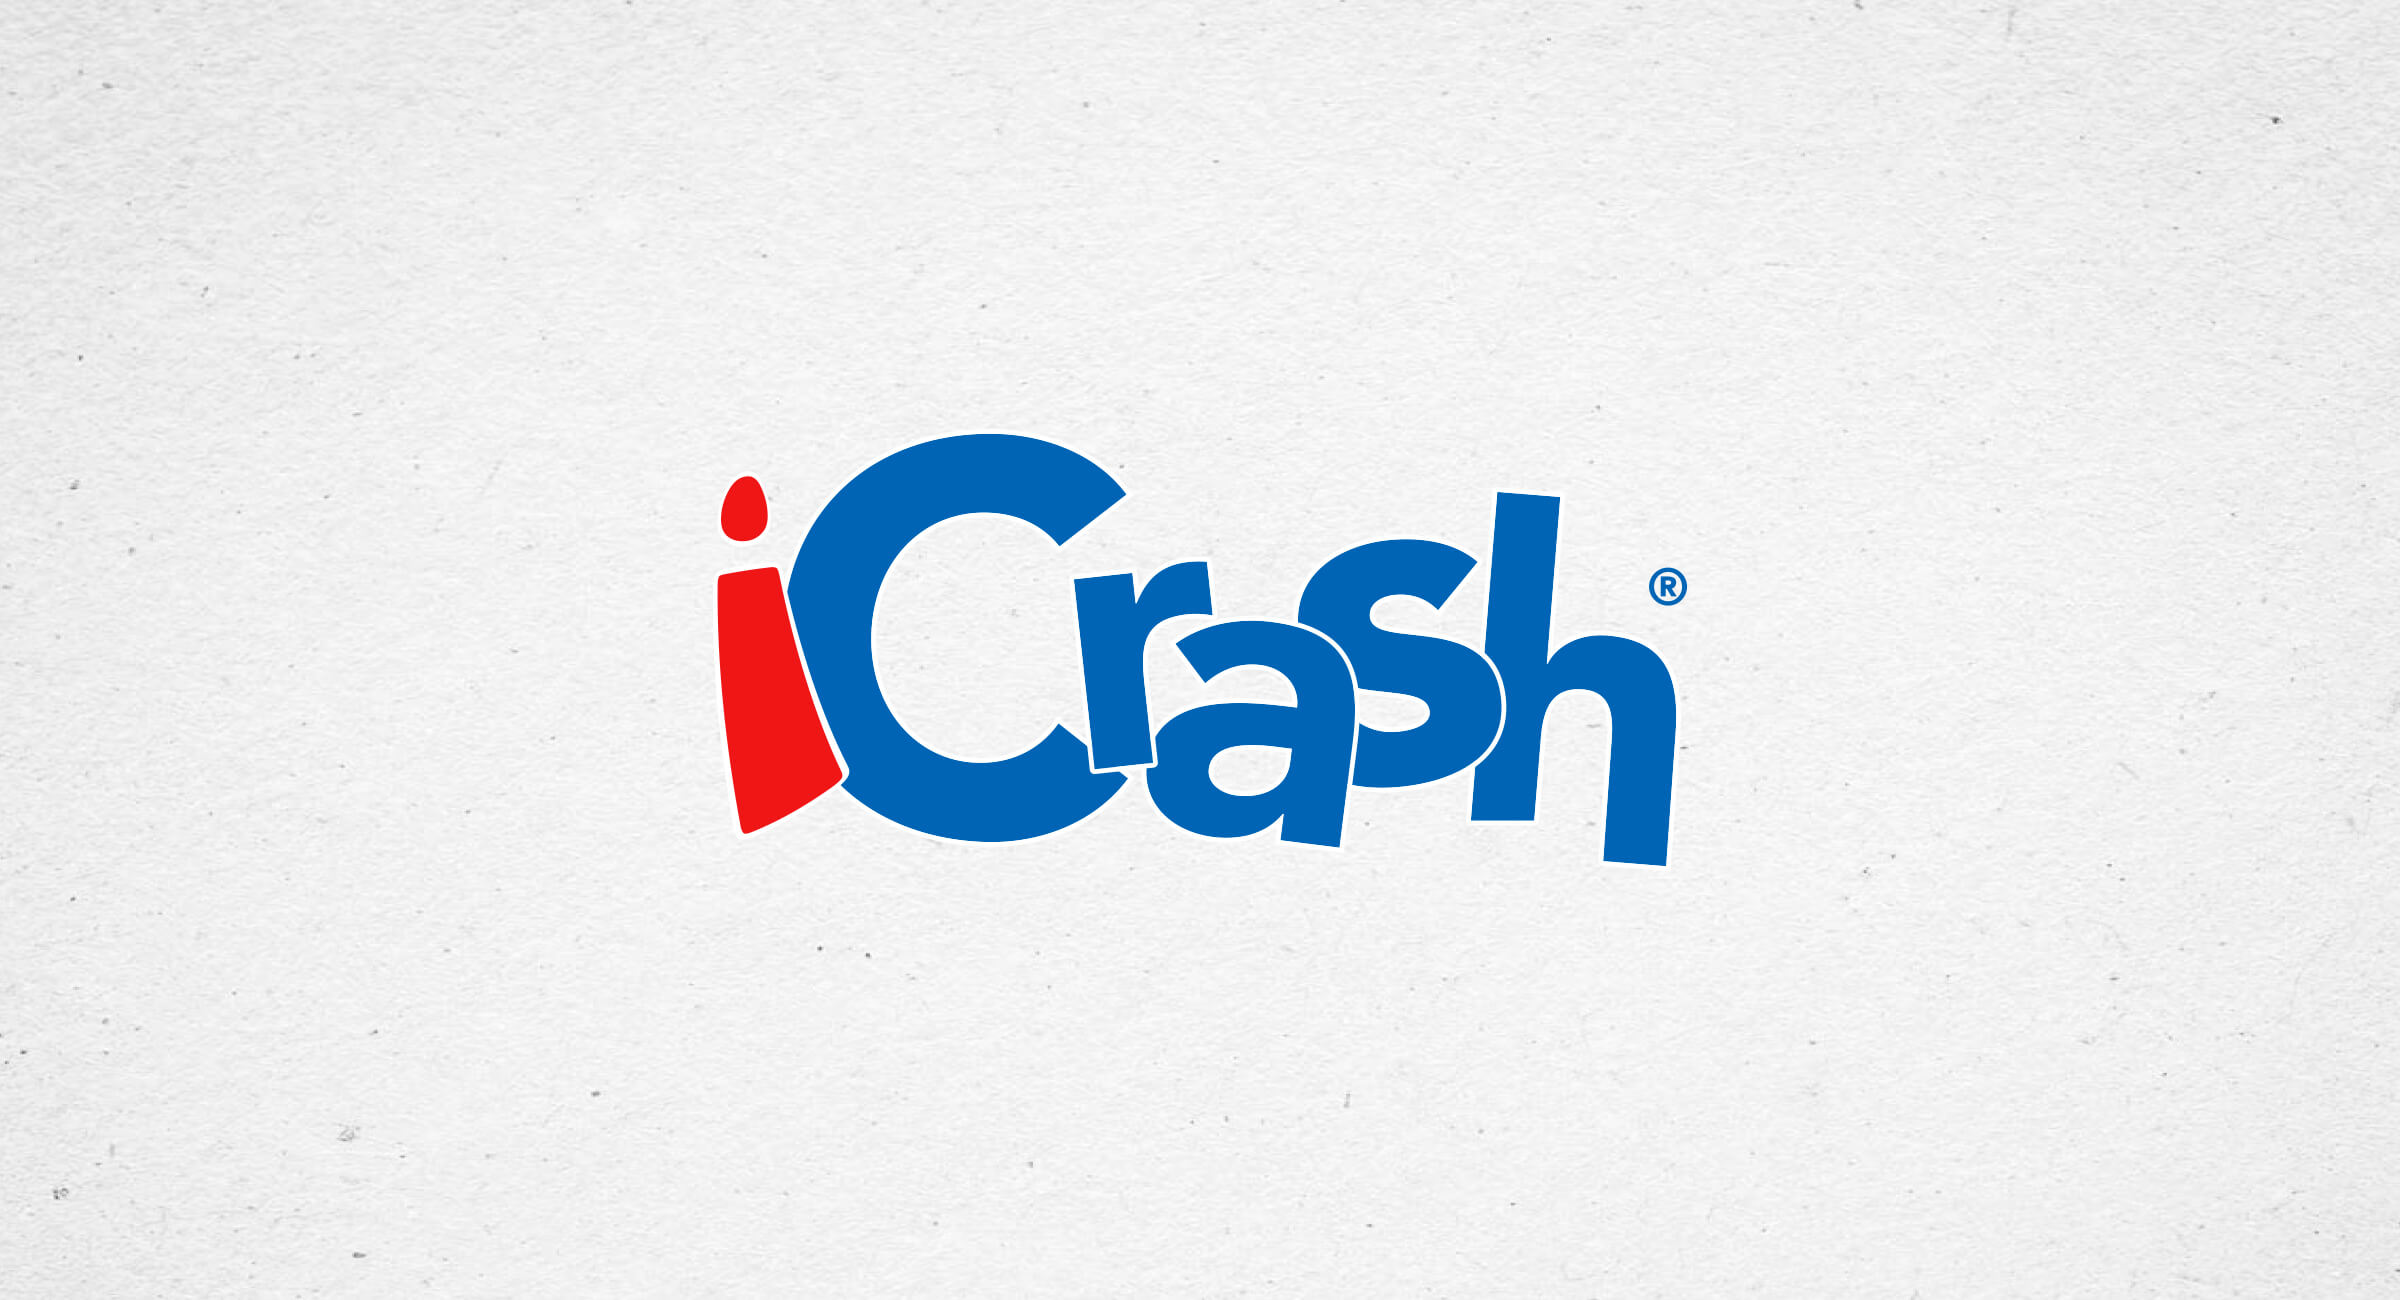 iCrash-logo-design-OnOff-Communication